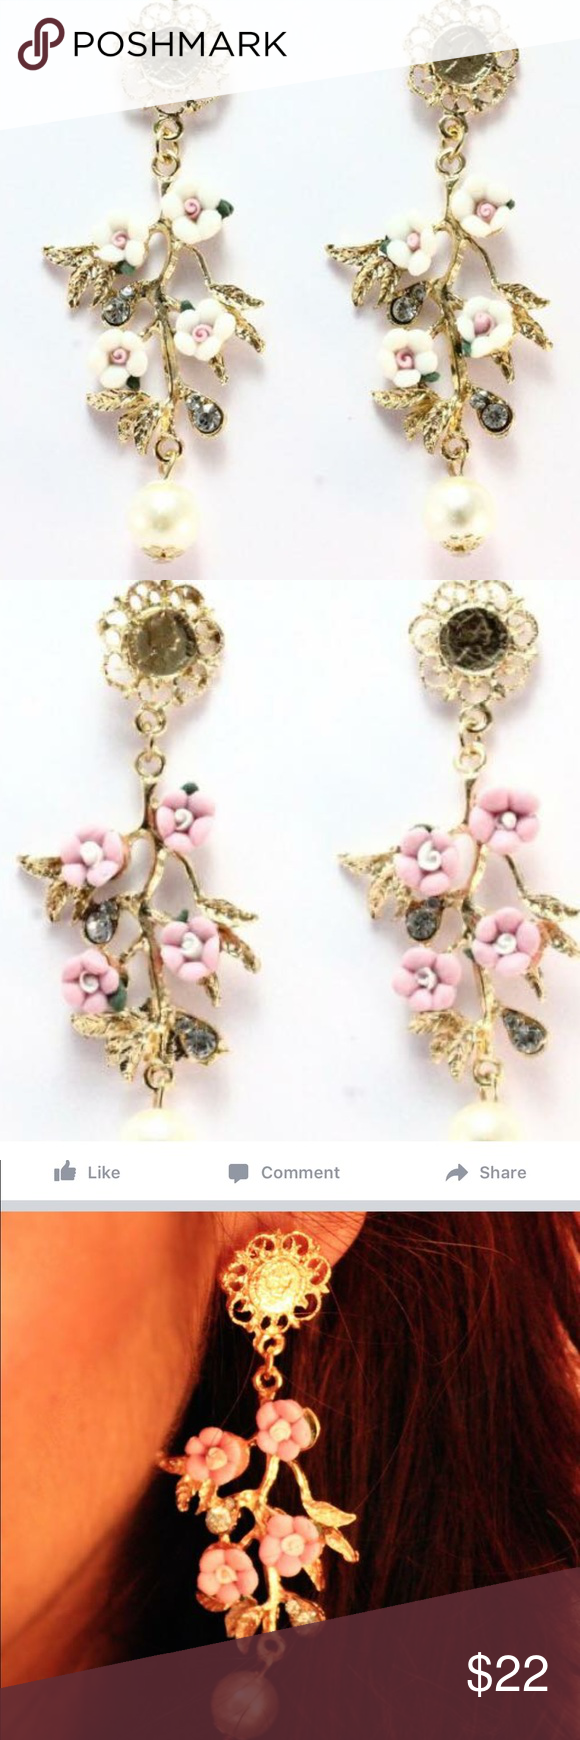 Chic Floral Earrings. Chic Floral Earrings - A guaranteed style statement now availble in summery pink and white. They really stand out when paired with linen pastel attires.Available in white, pink and blue color. Only 1 pair of each color available. Please mention your color preference. Jewelry Earrings